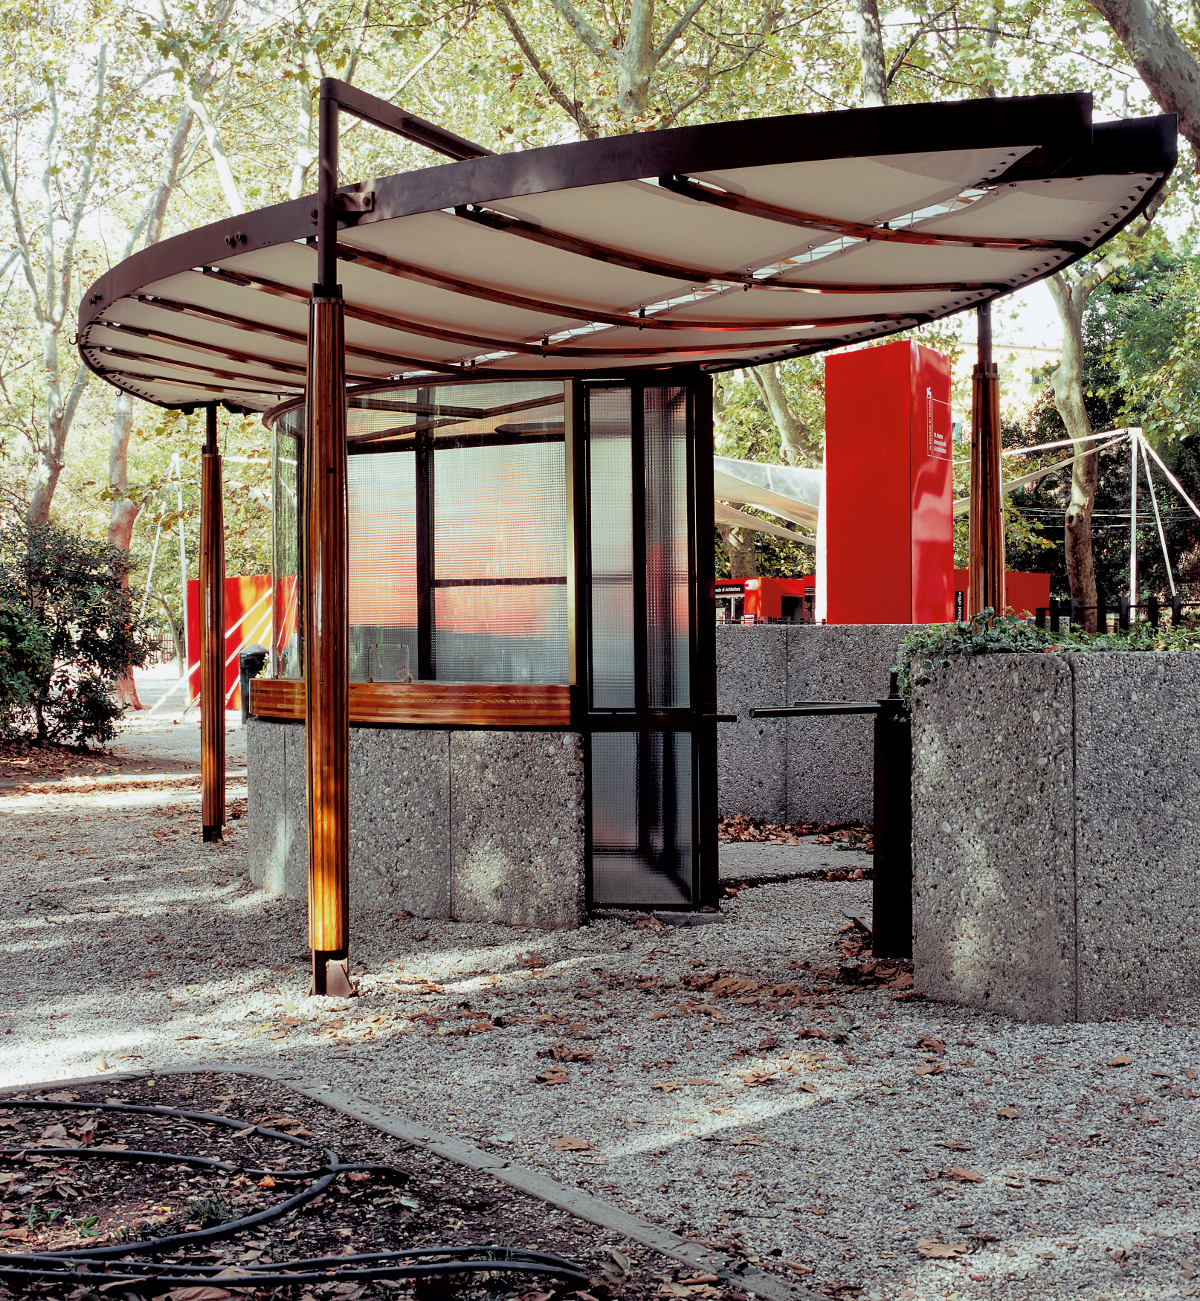 The Biennale ticket booth, Venice 1951-52